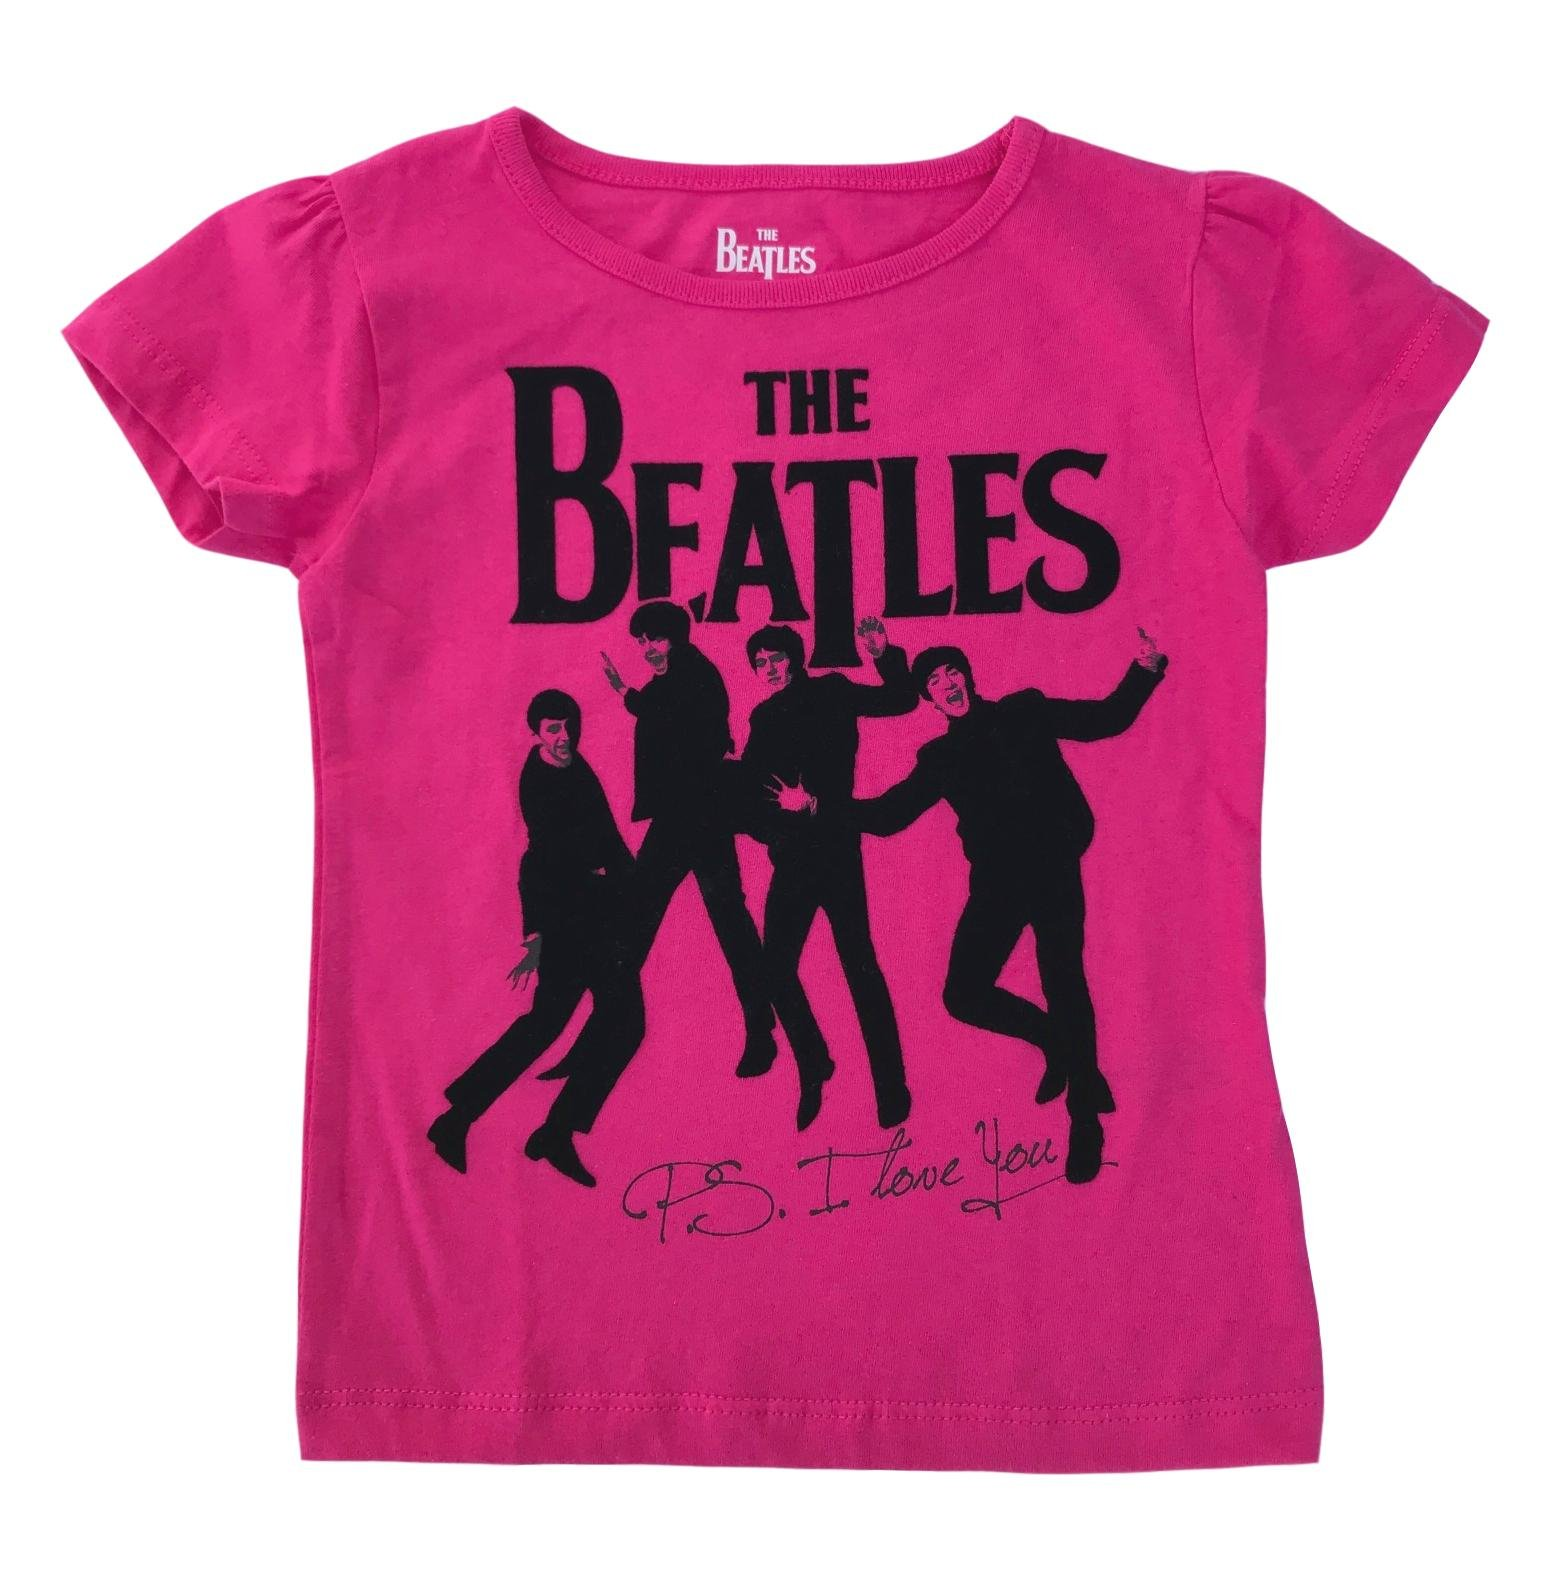 The Beatles P.S. I Love You Toddler Girls T-Shirt (3T, Pink)